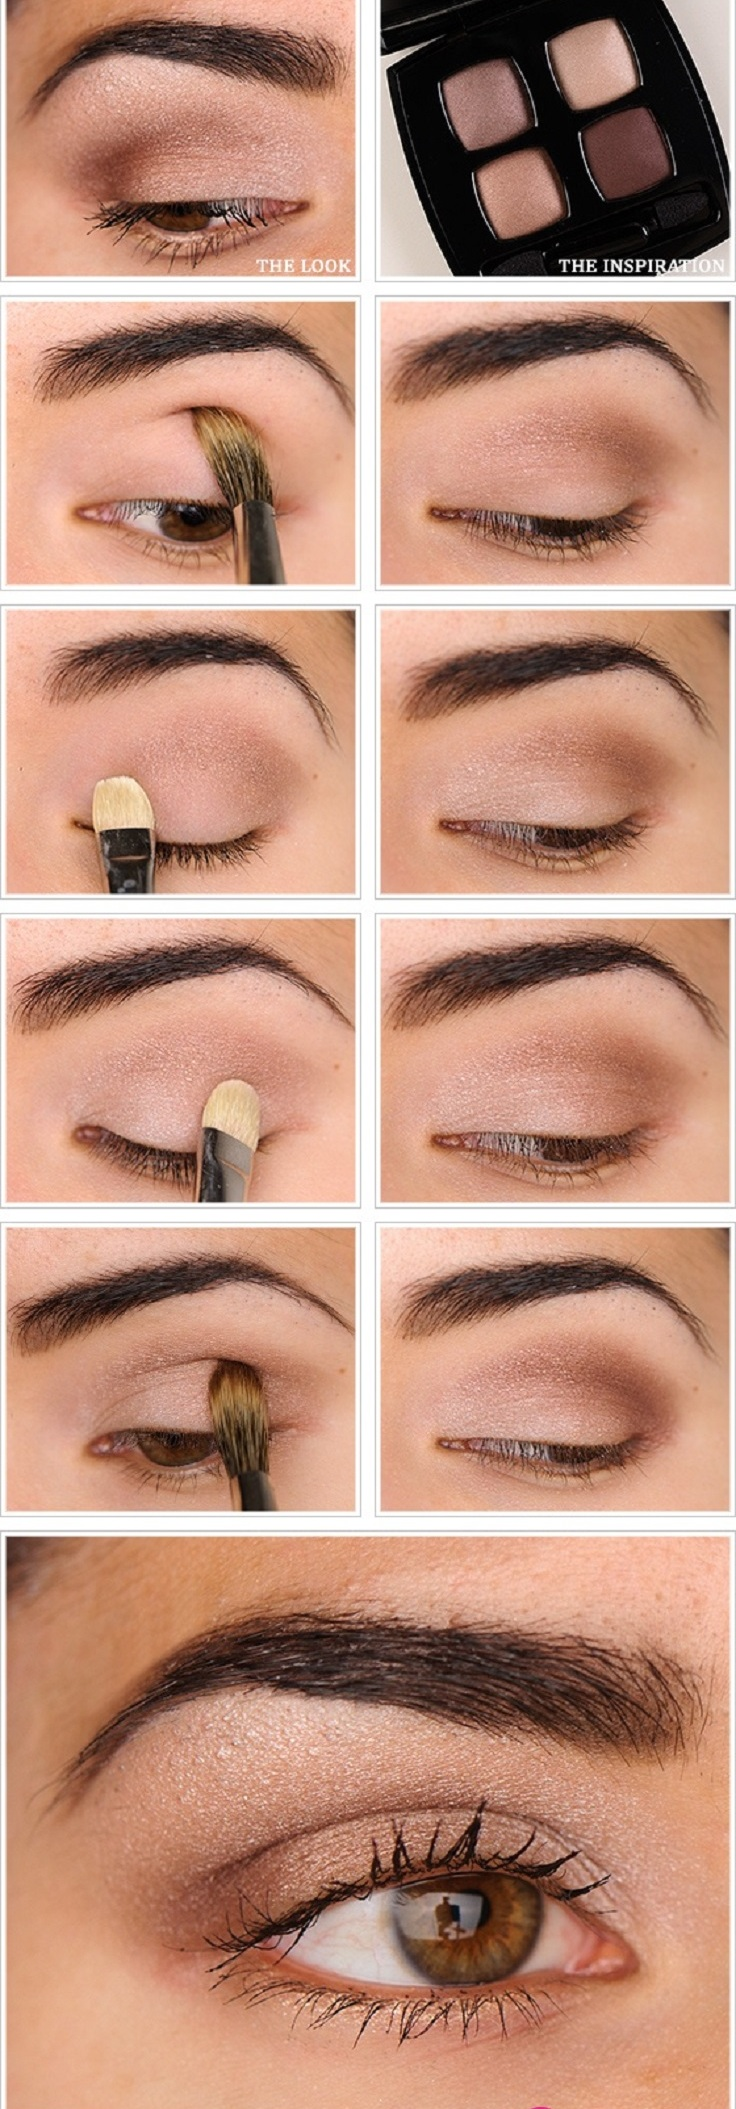 10 Natural  photo Top for Eye tutorial Tutorials Make makeup Up natural eye